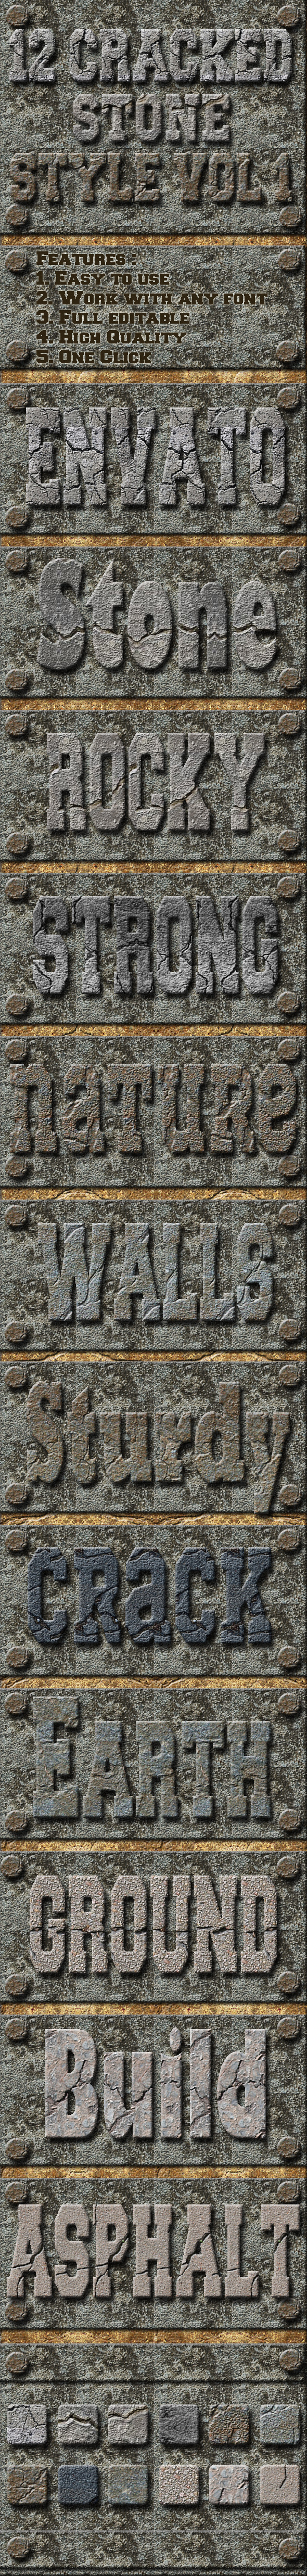 12 Cracked Stones Text Effect Style Vol 1 - Styles Photoshop